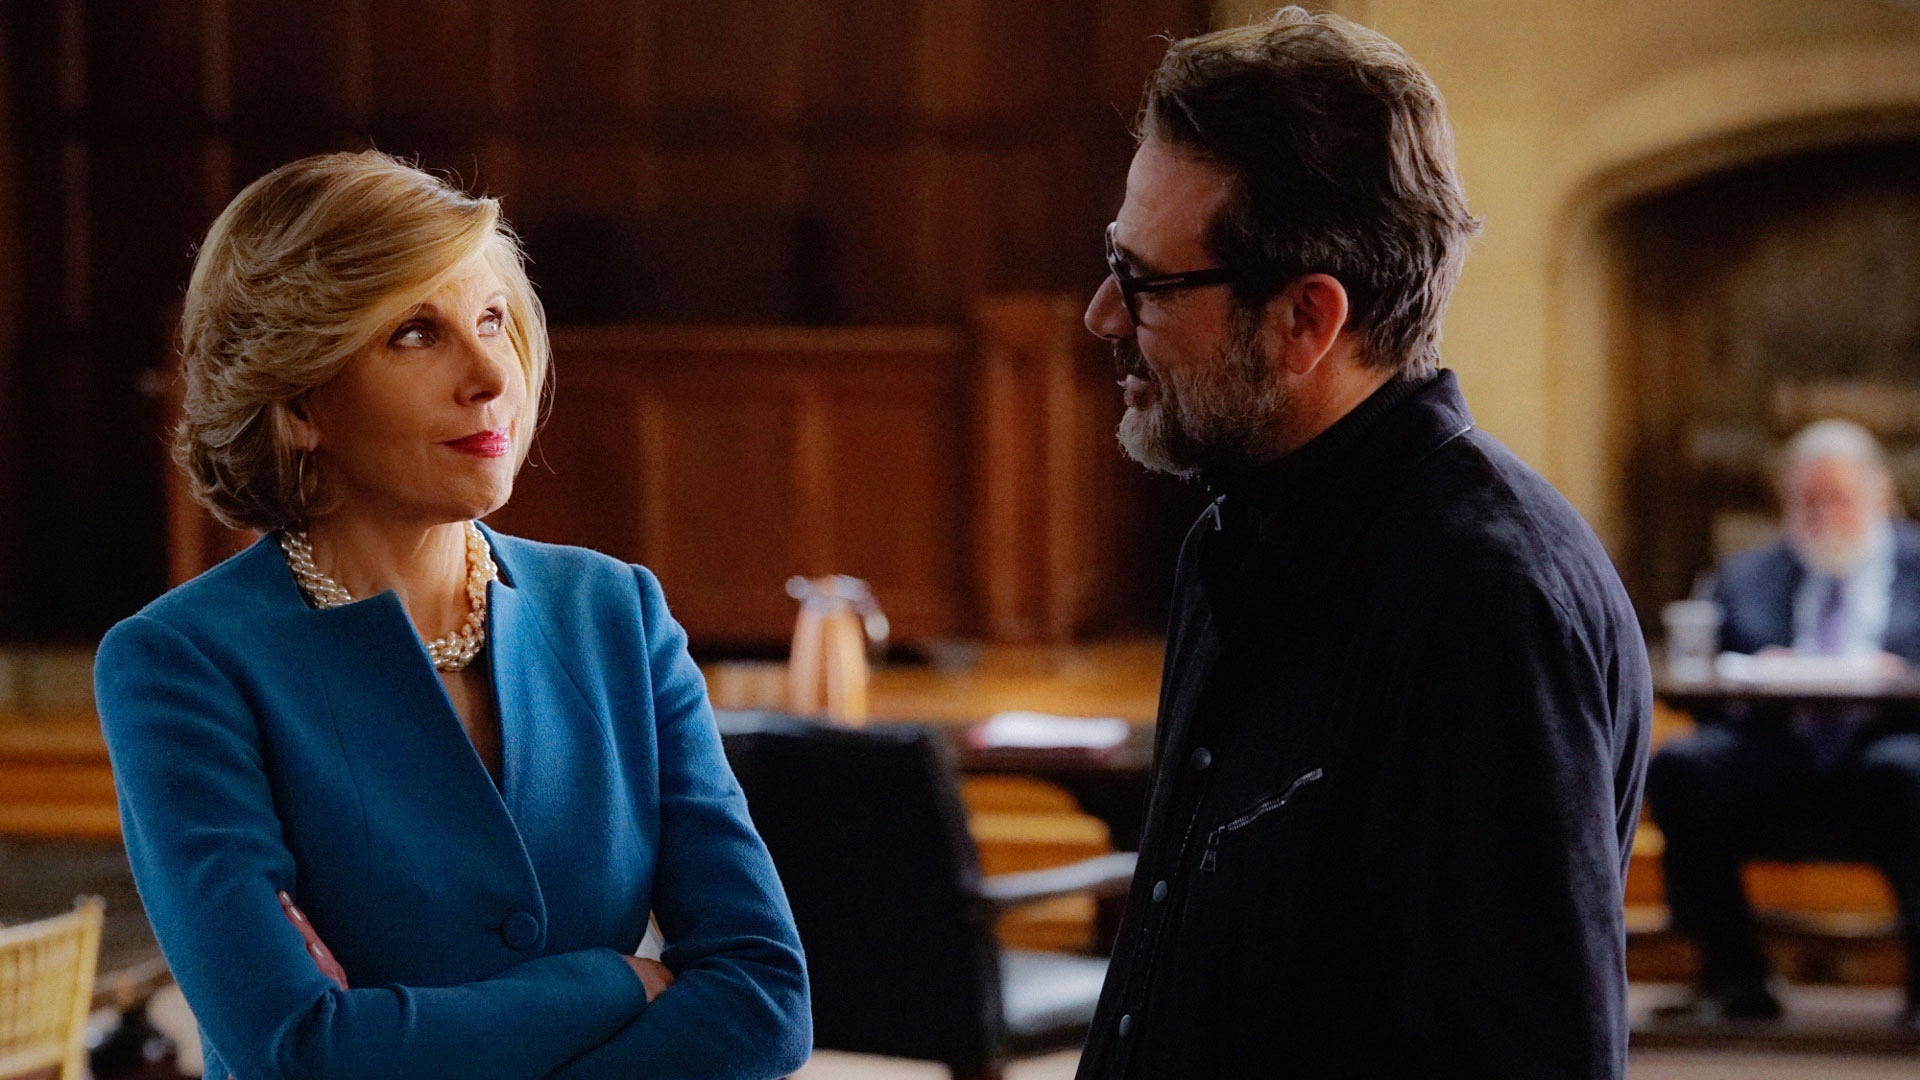 Christine Baranski as Diane Lockhart and Jeffrey Dean Morgan as Jason Crouse